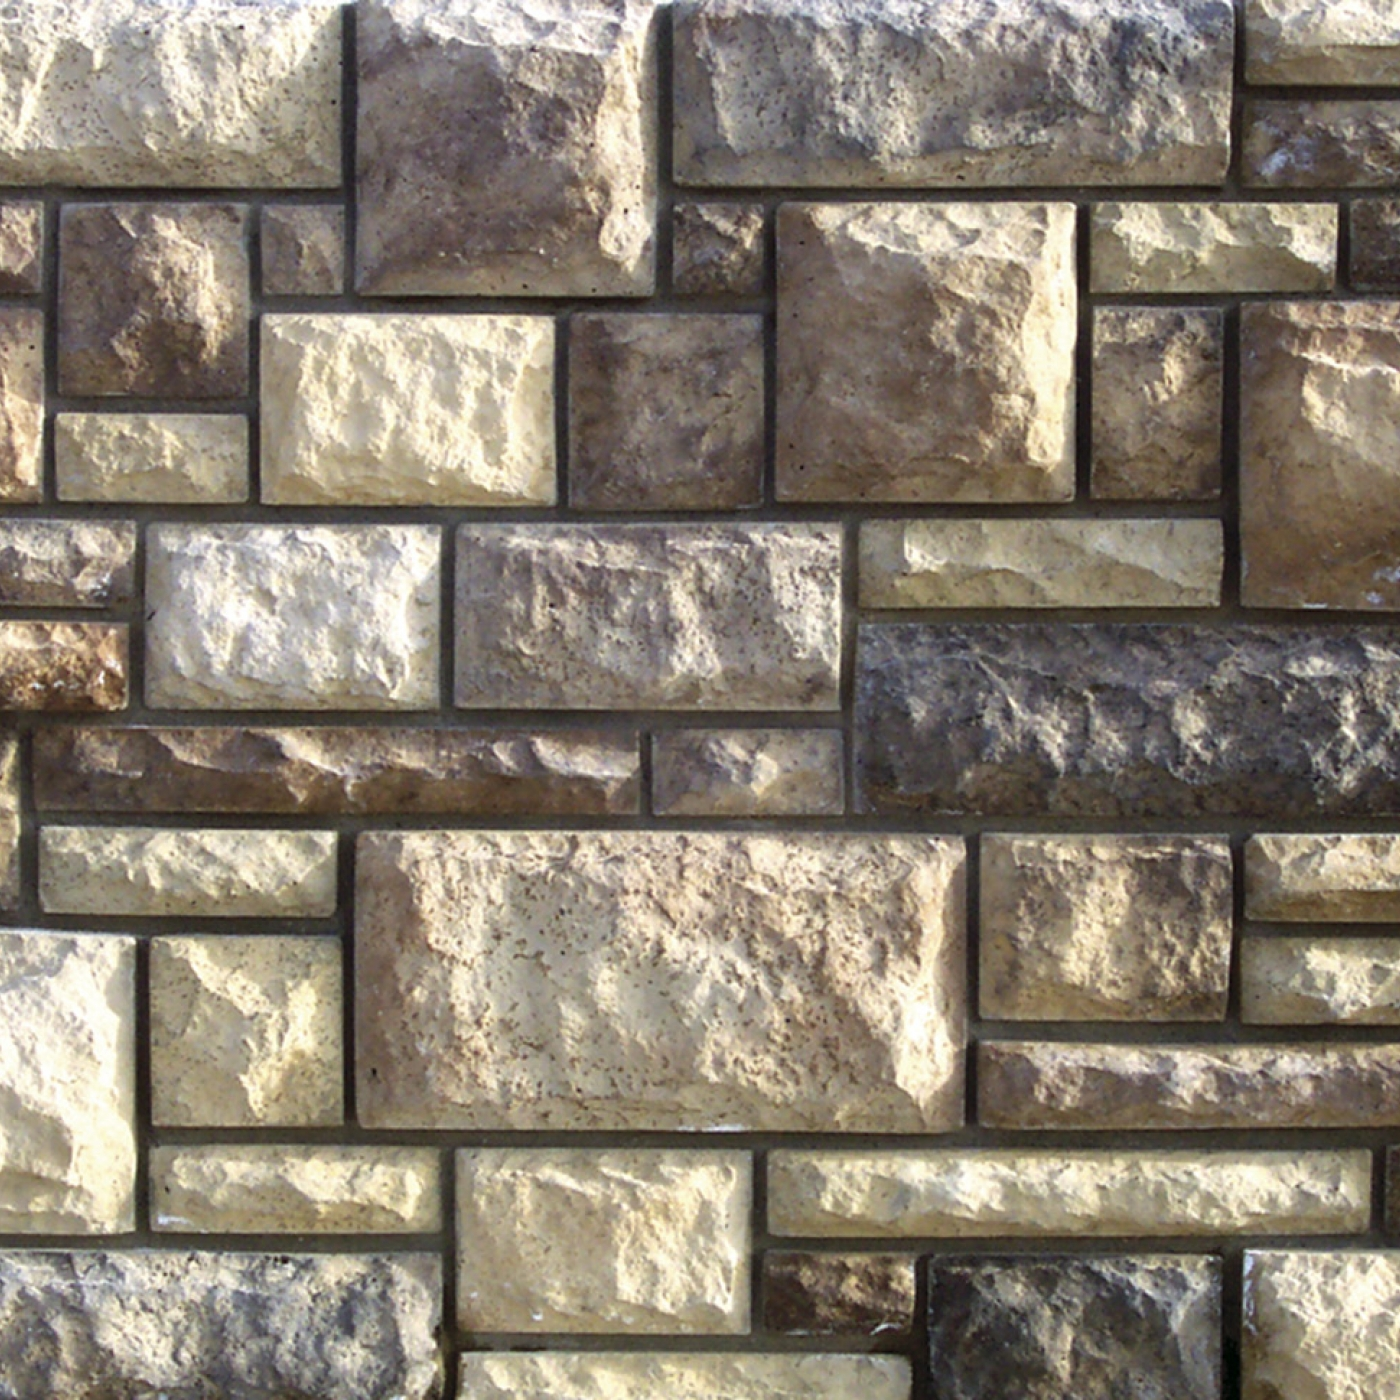 Sandstone Castle Rock Cut Stone Stone Veneer from Environmental StoneWorks